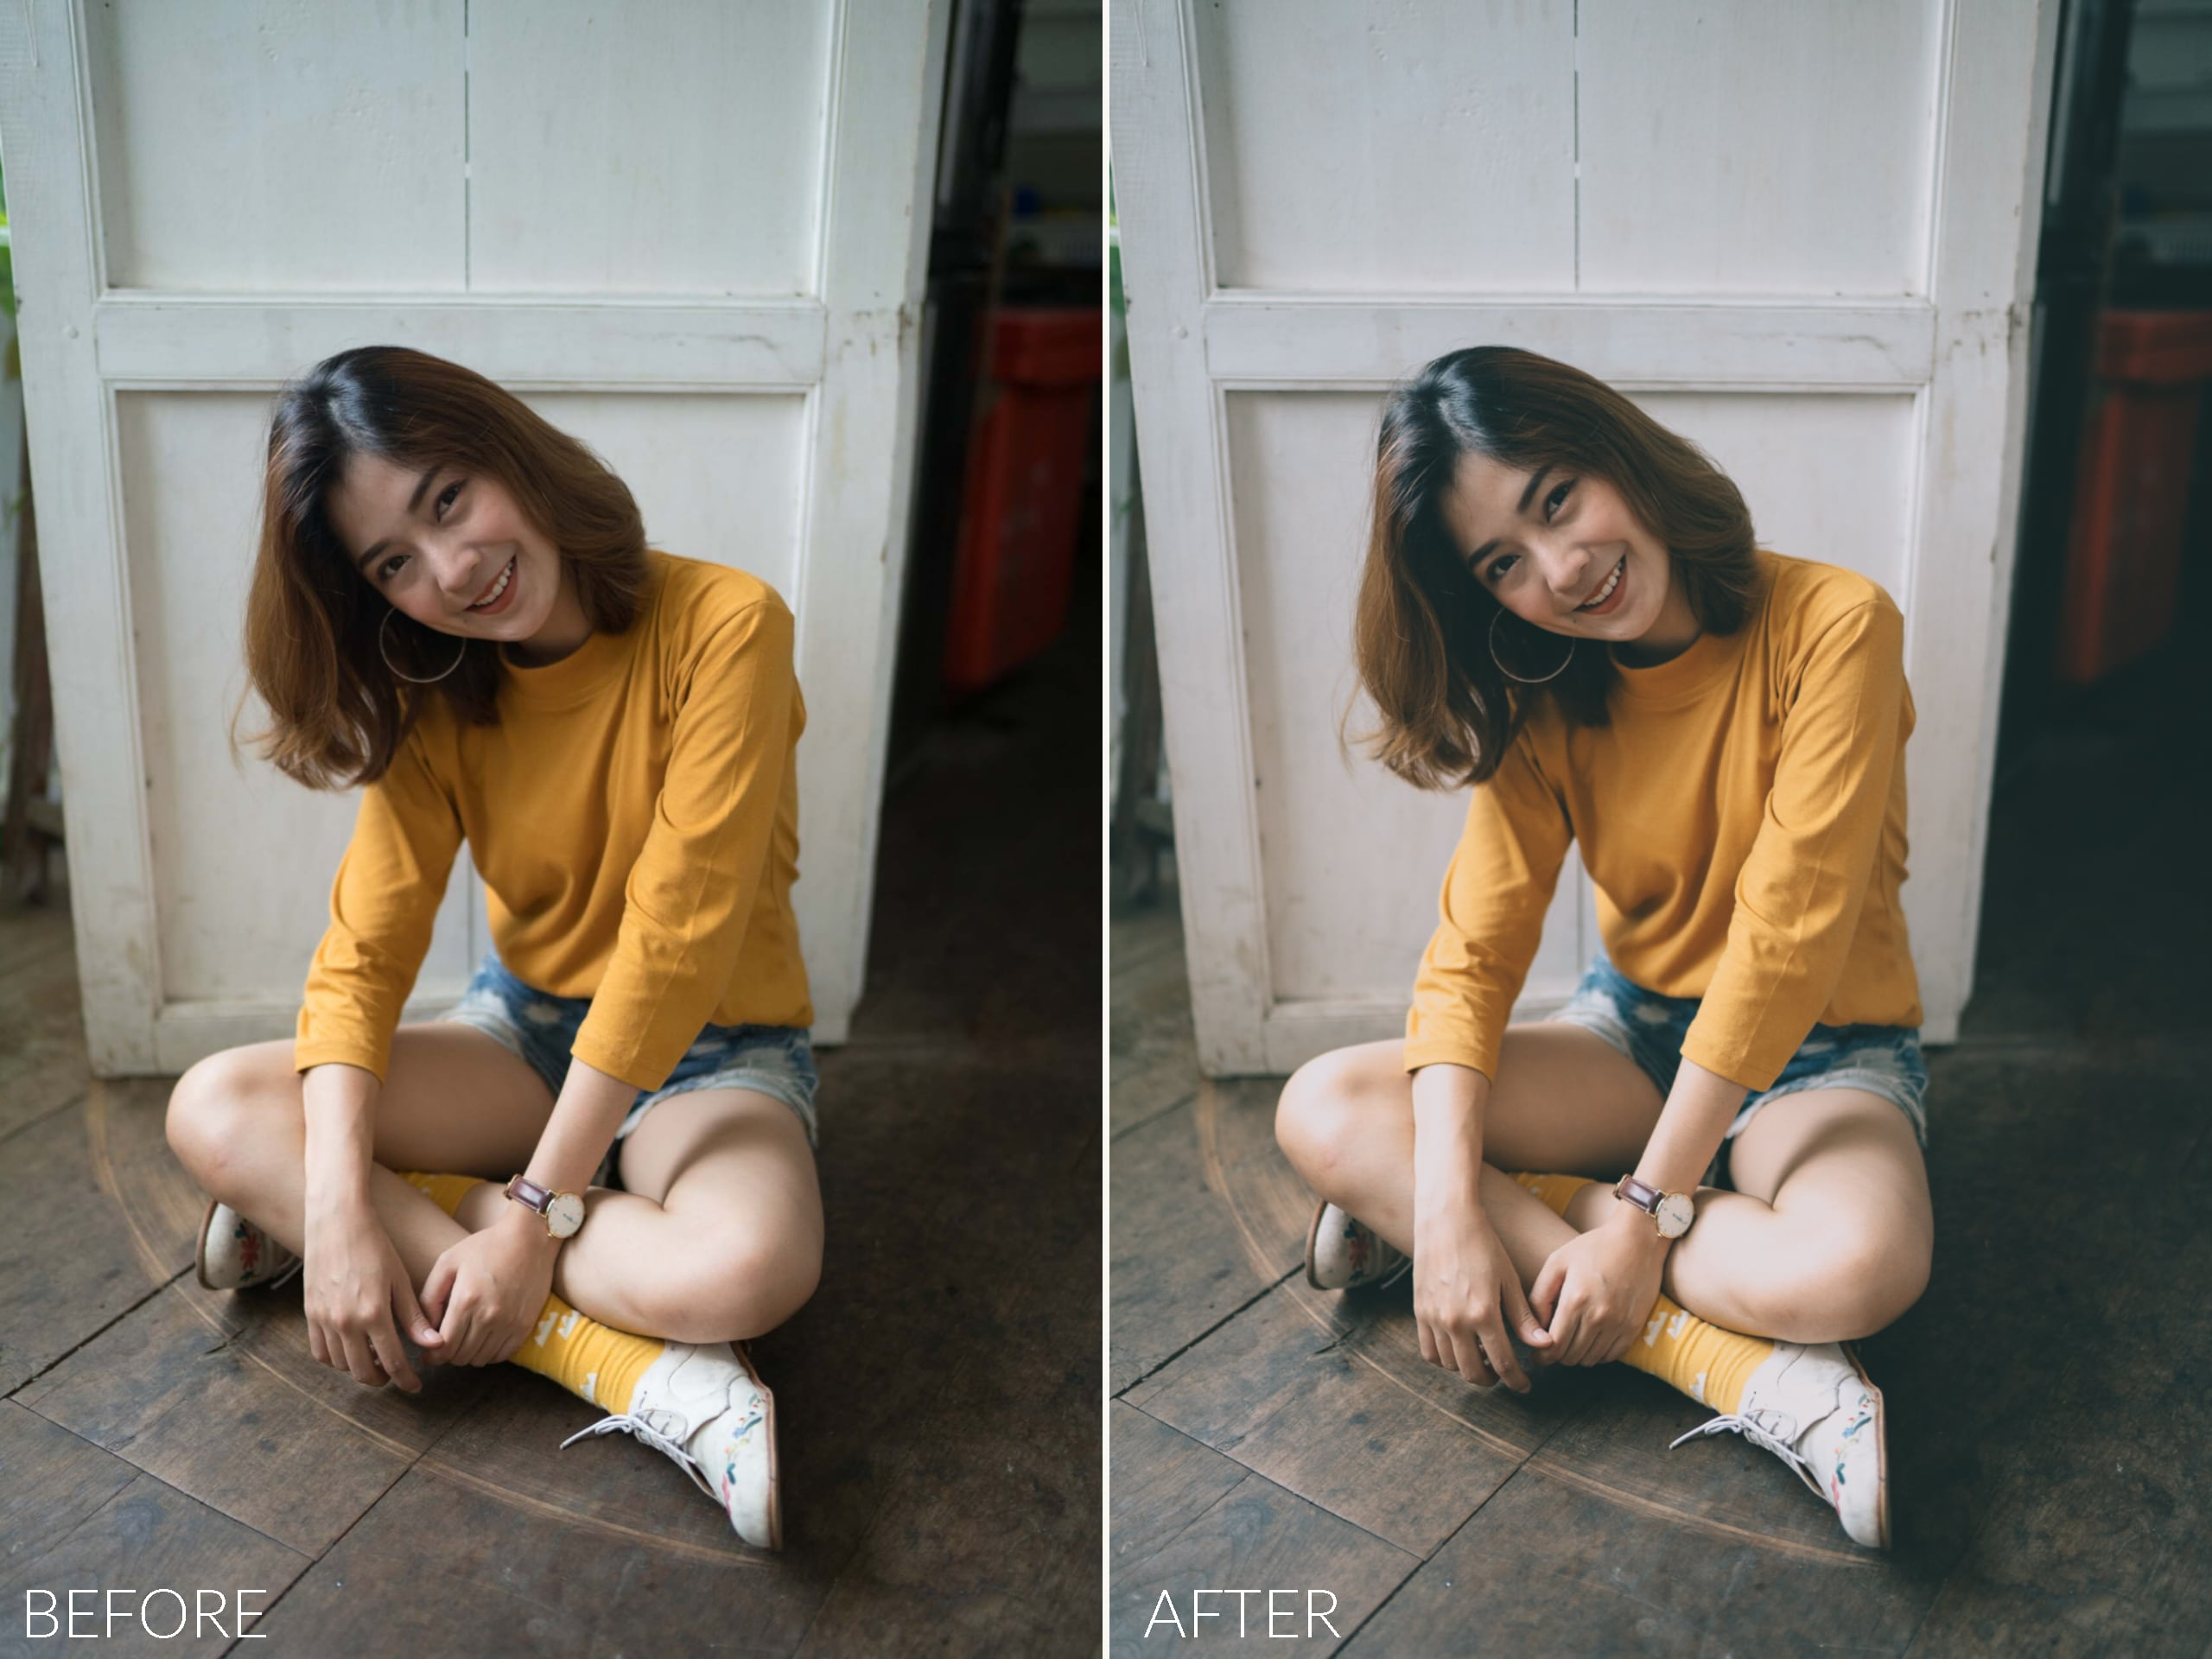 BEFORE AFTER TEST Copy 2 (10)